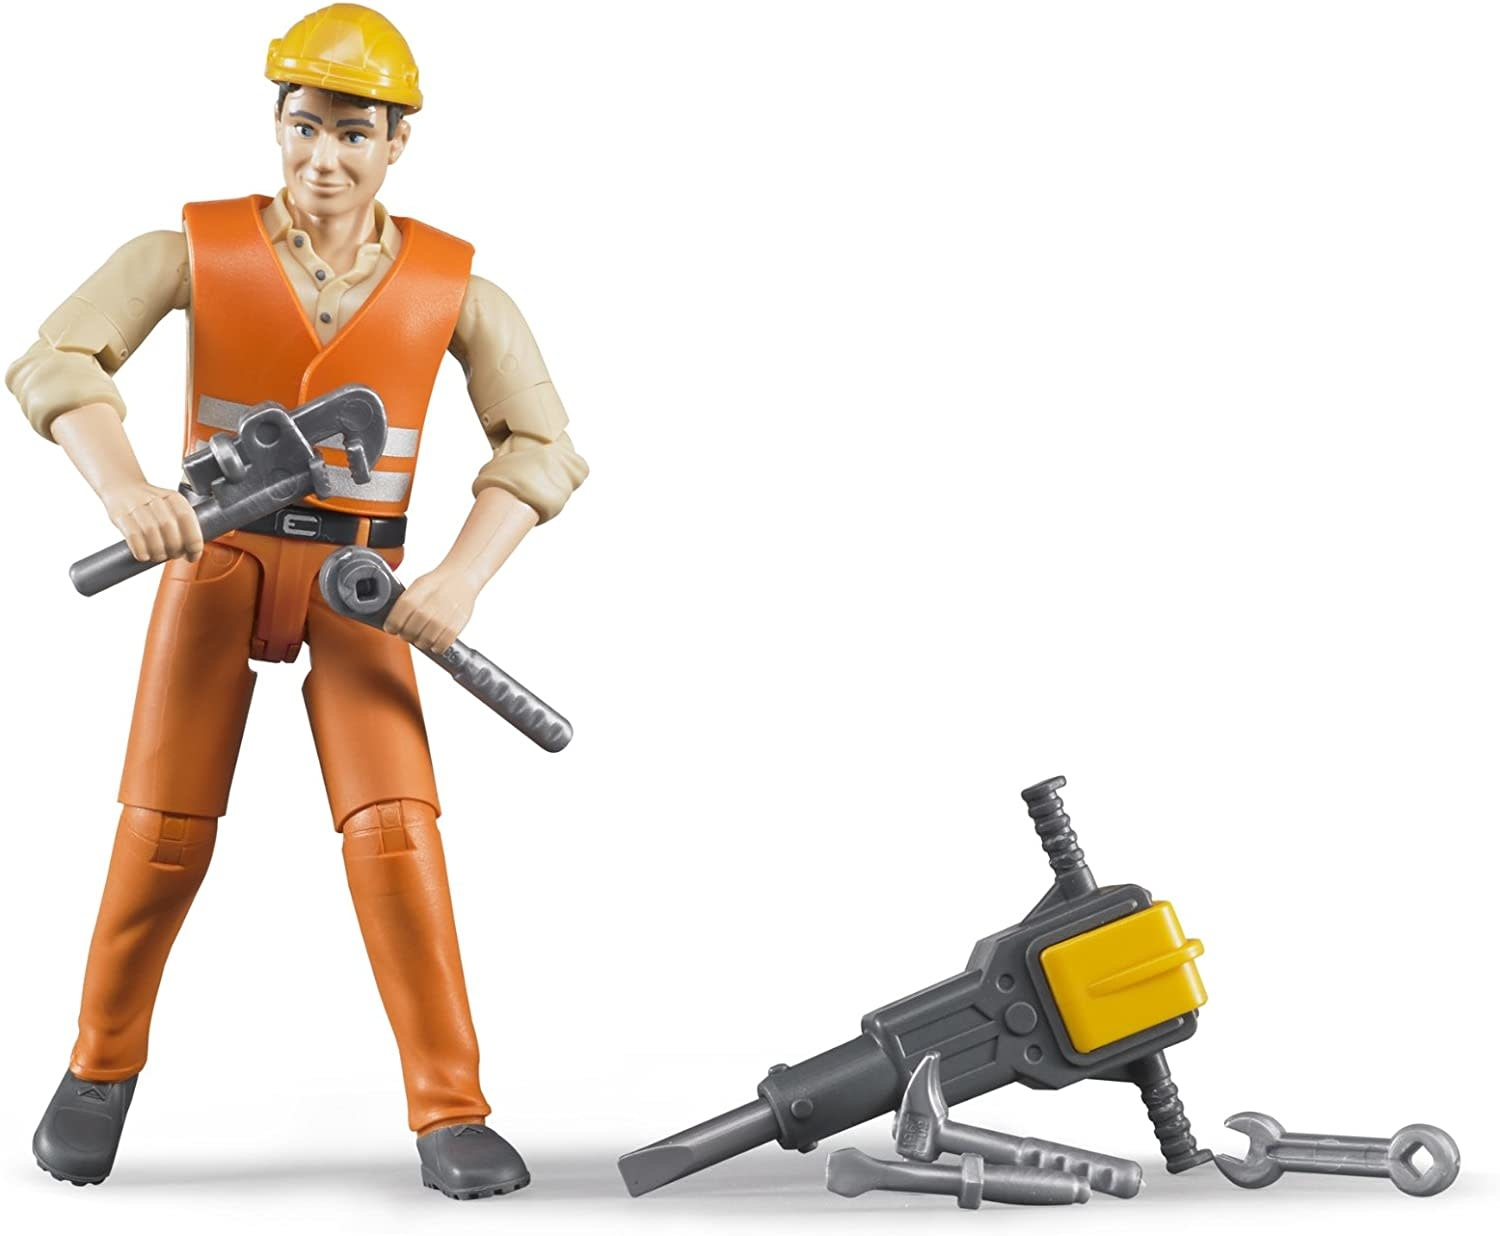 Construction Worker w/ Accessories by Bruder